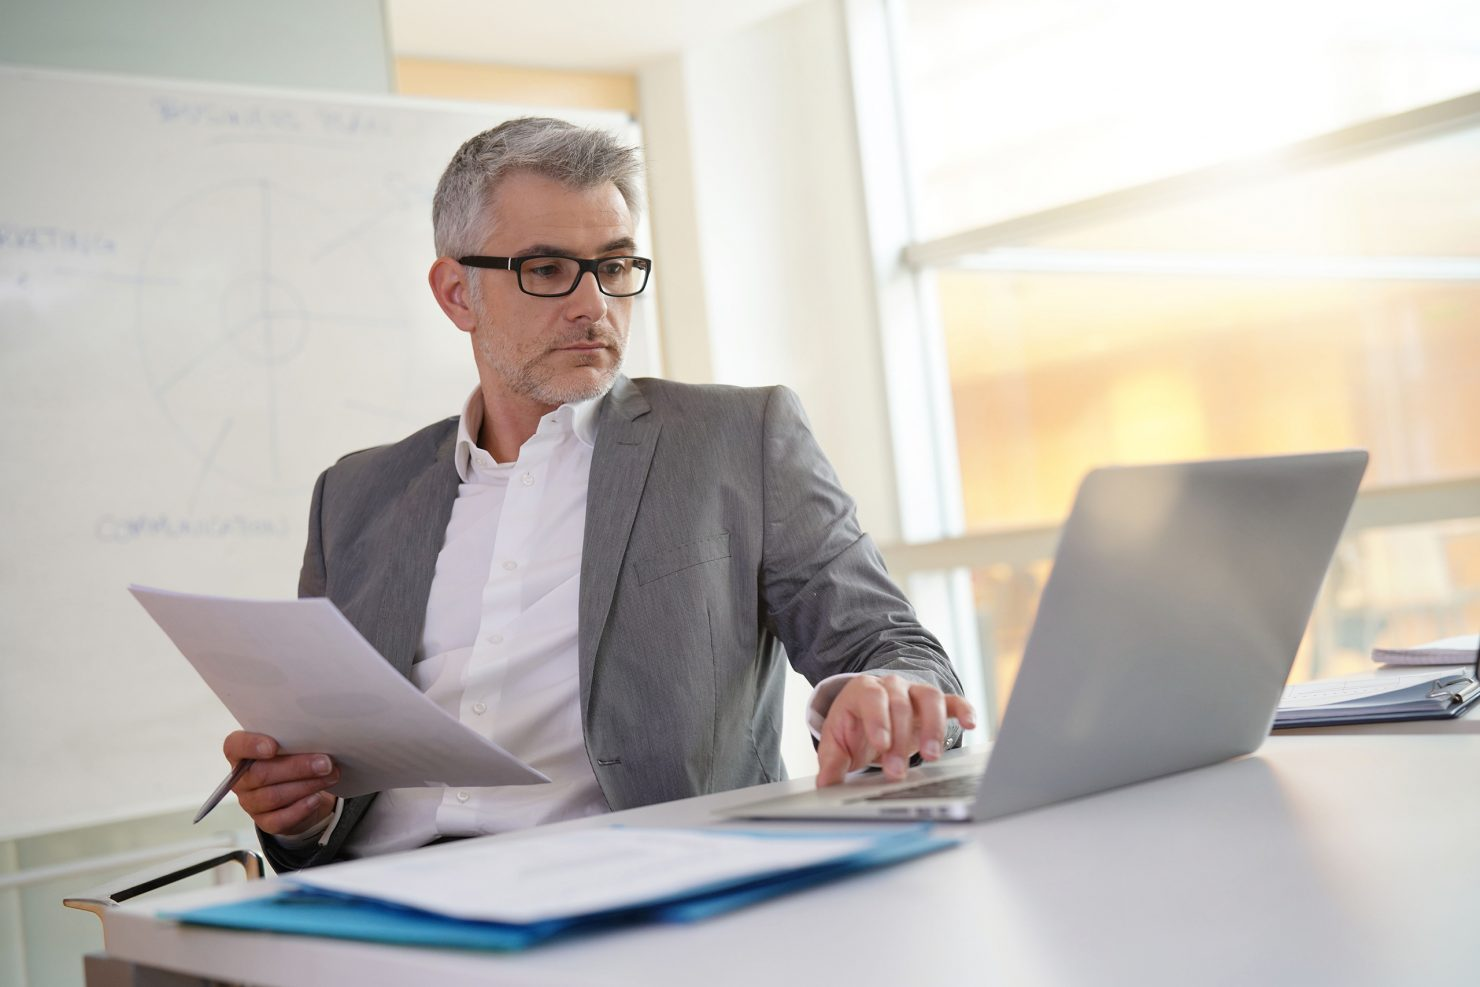 Businessman in office working on laptop